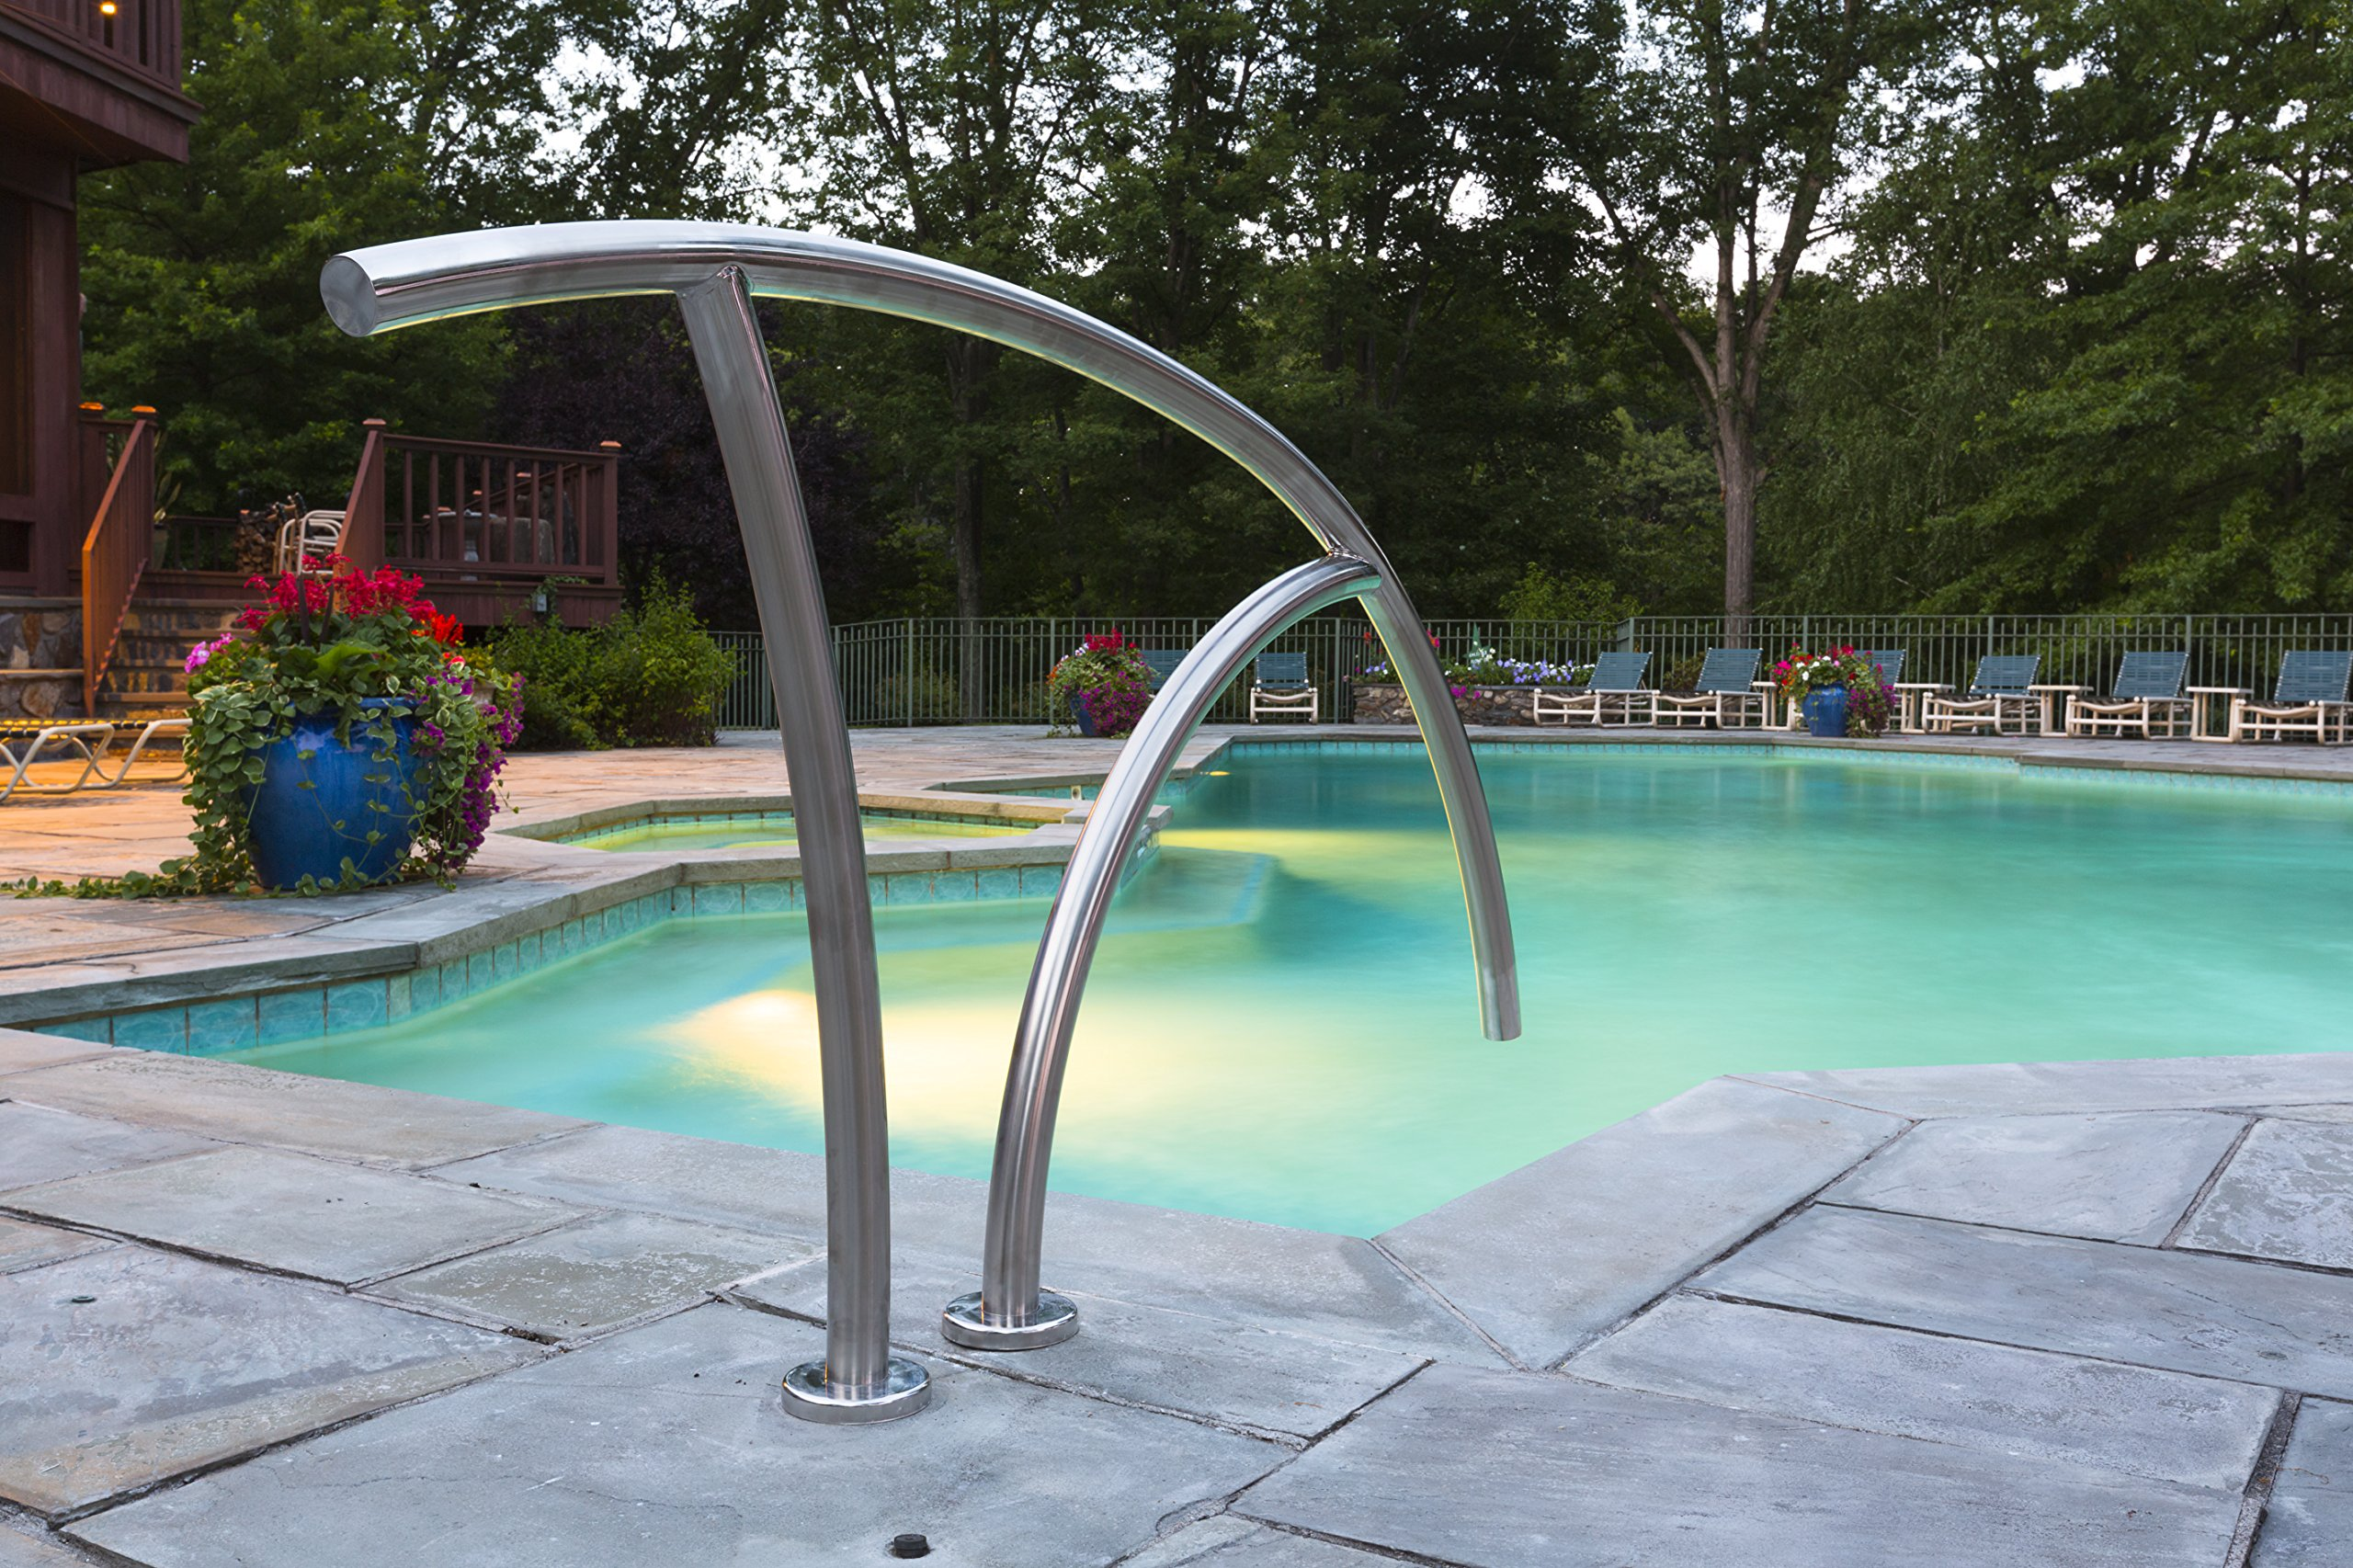 S.R.Smith ART-1004-MG Artisan Series Pool Rail, Stainless Steel by S.R. Smith